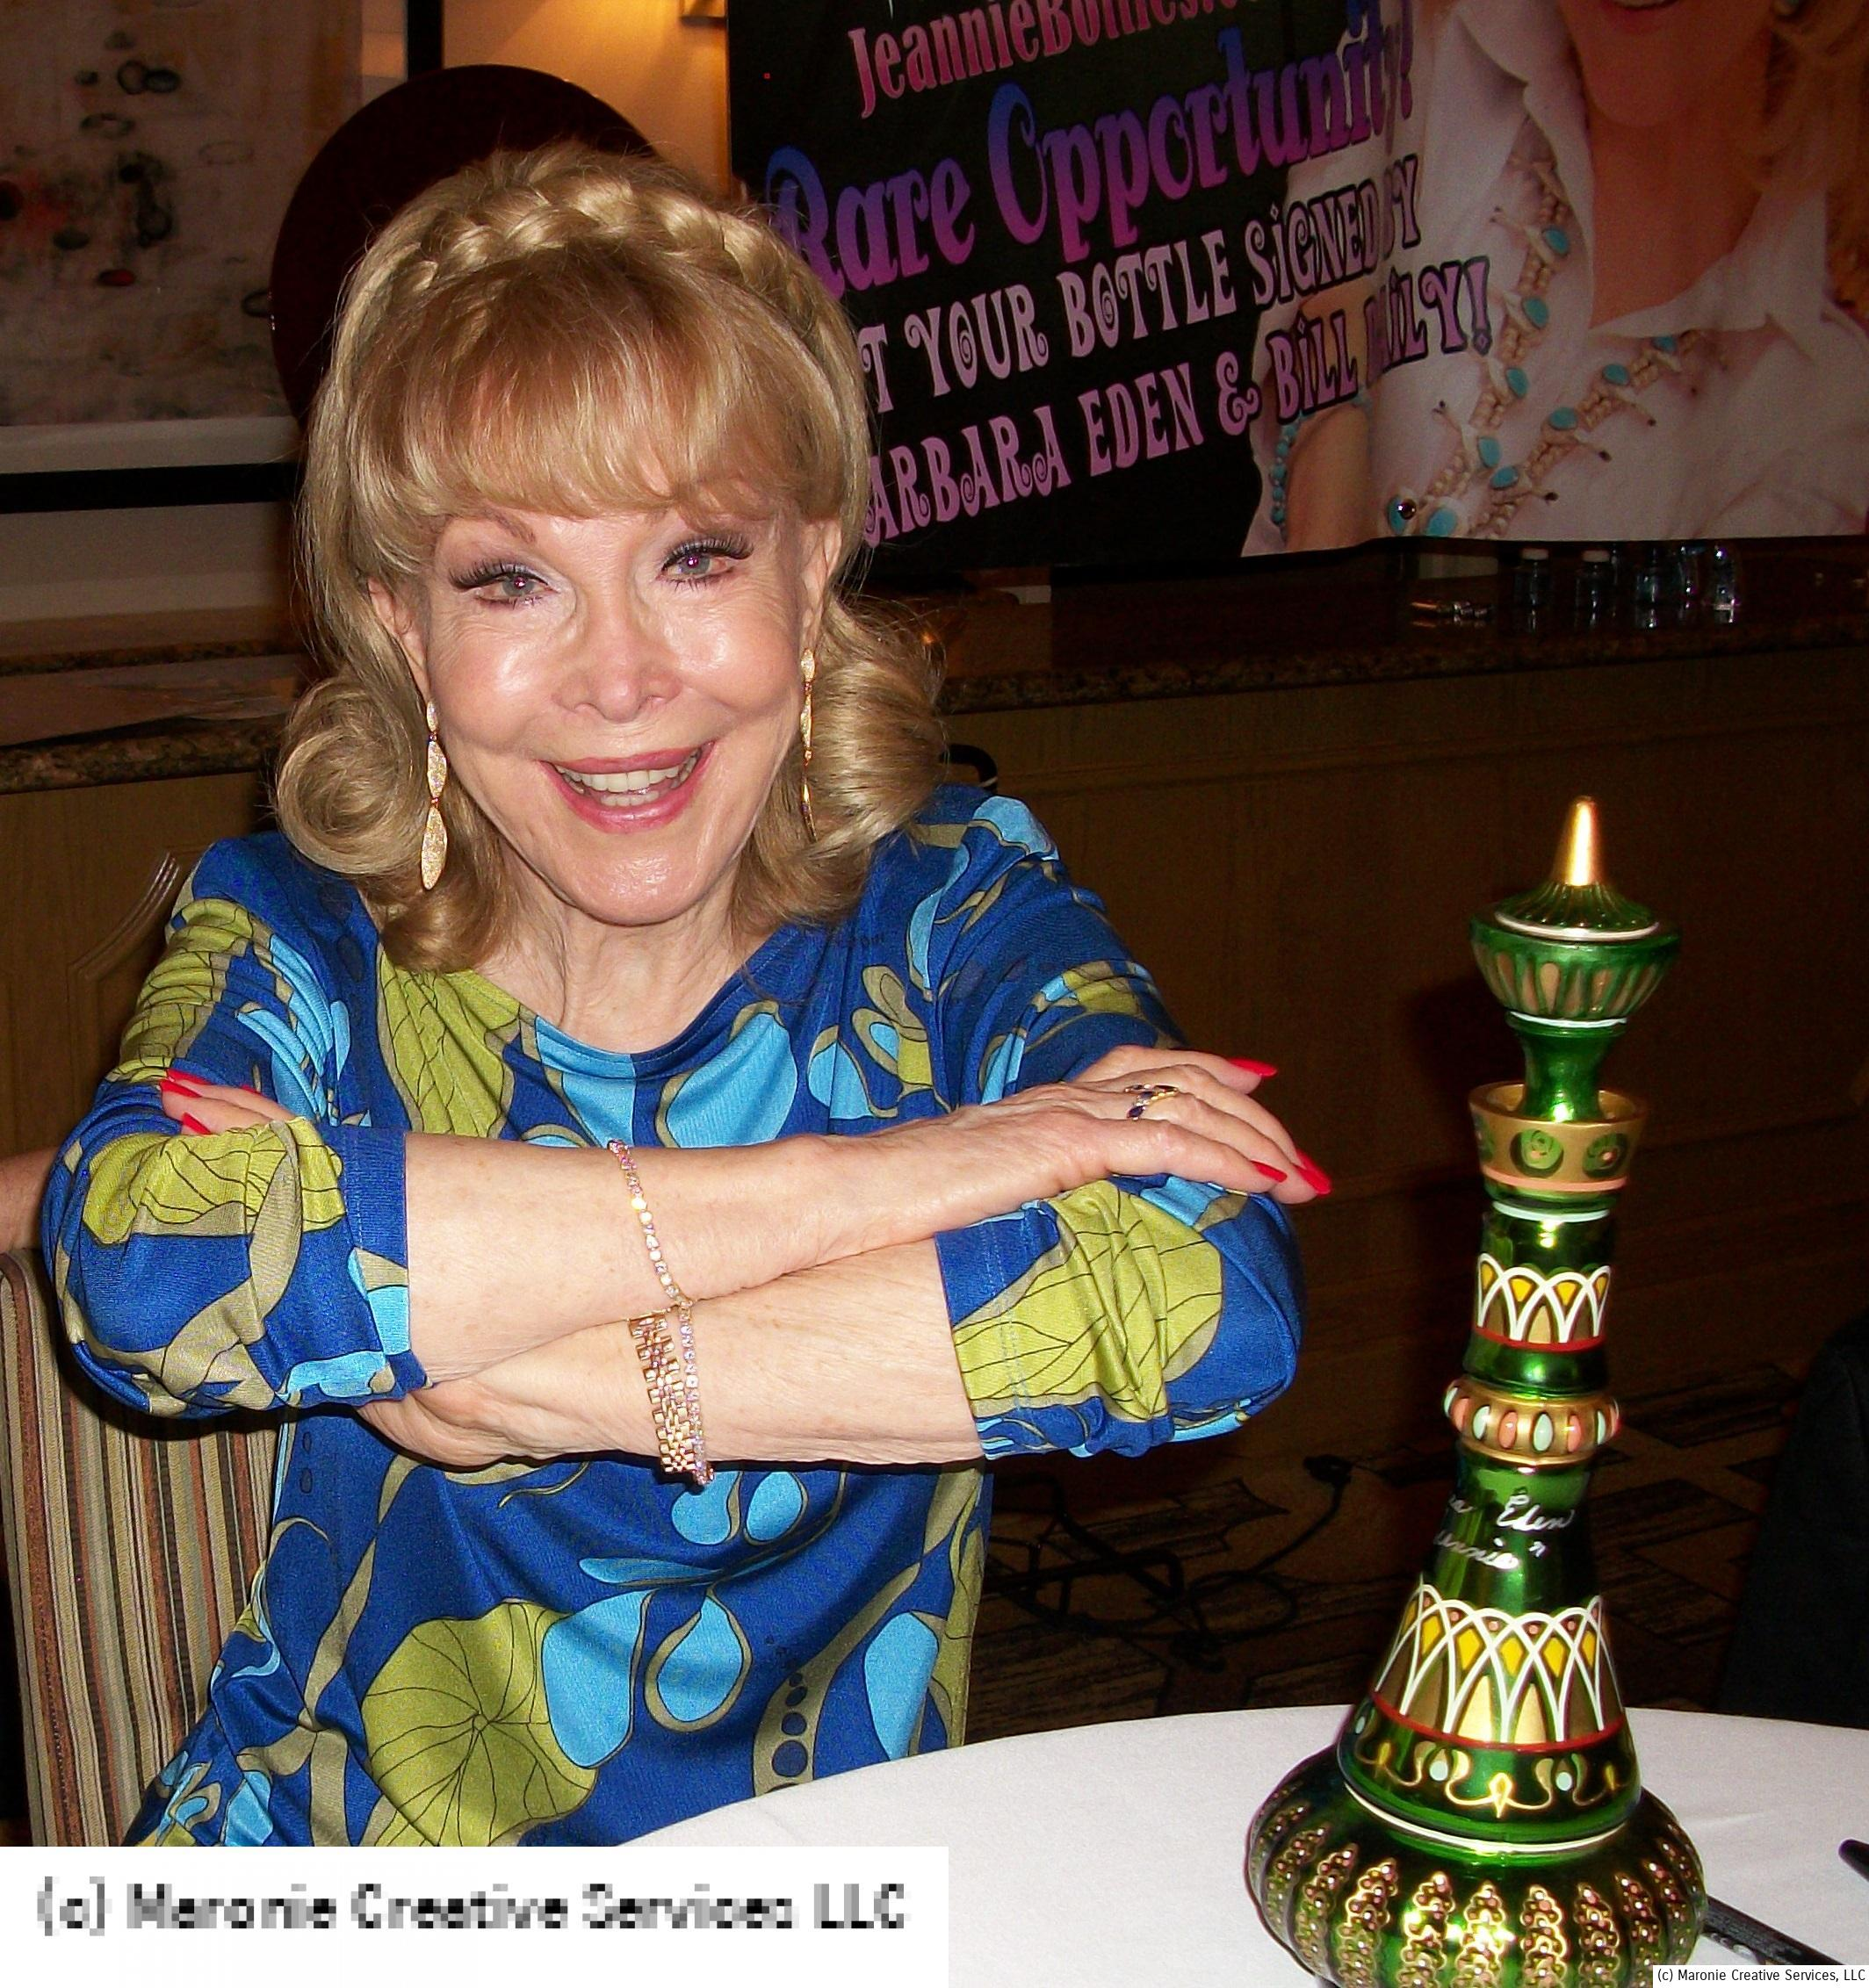 Actress Barbara Eden, photo taken at the Hollywood Show Chicago, September 7, 2013. Obviously, she has worked some Jeannie magic--she looks like she hasn't aged a day!